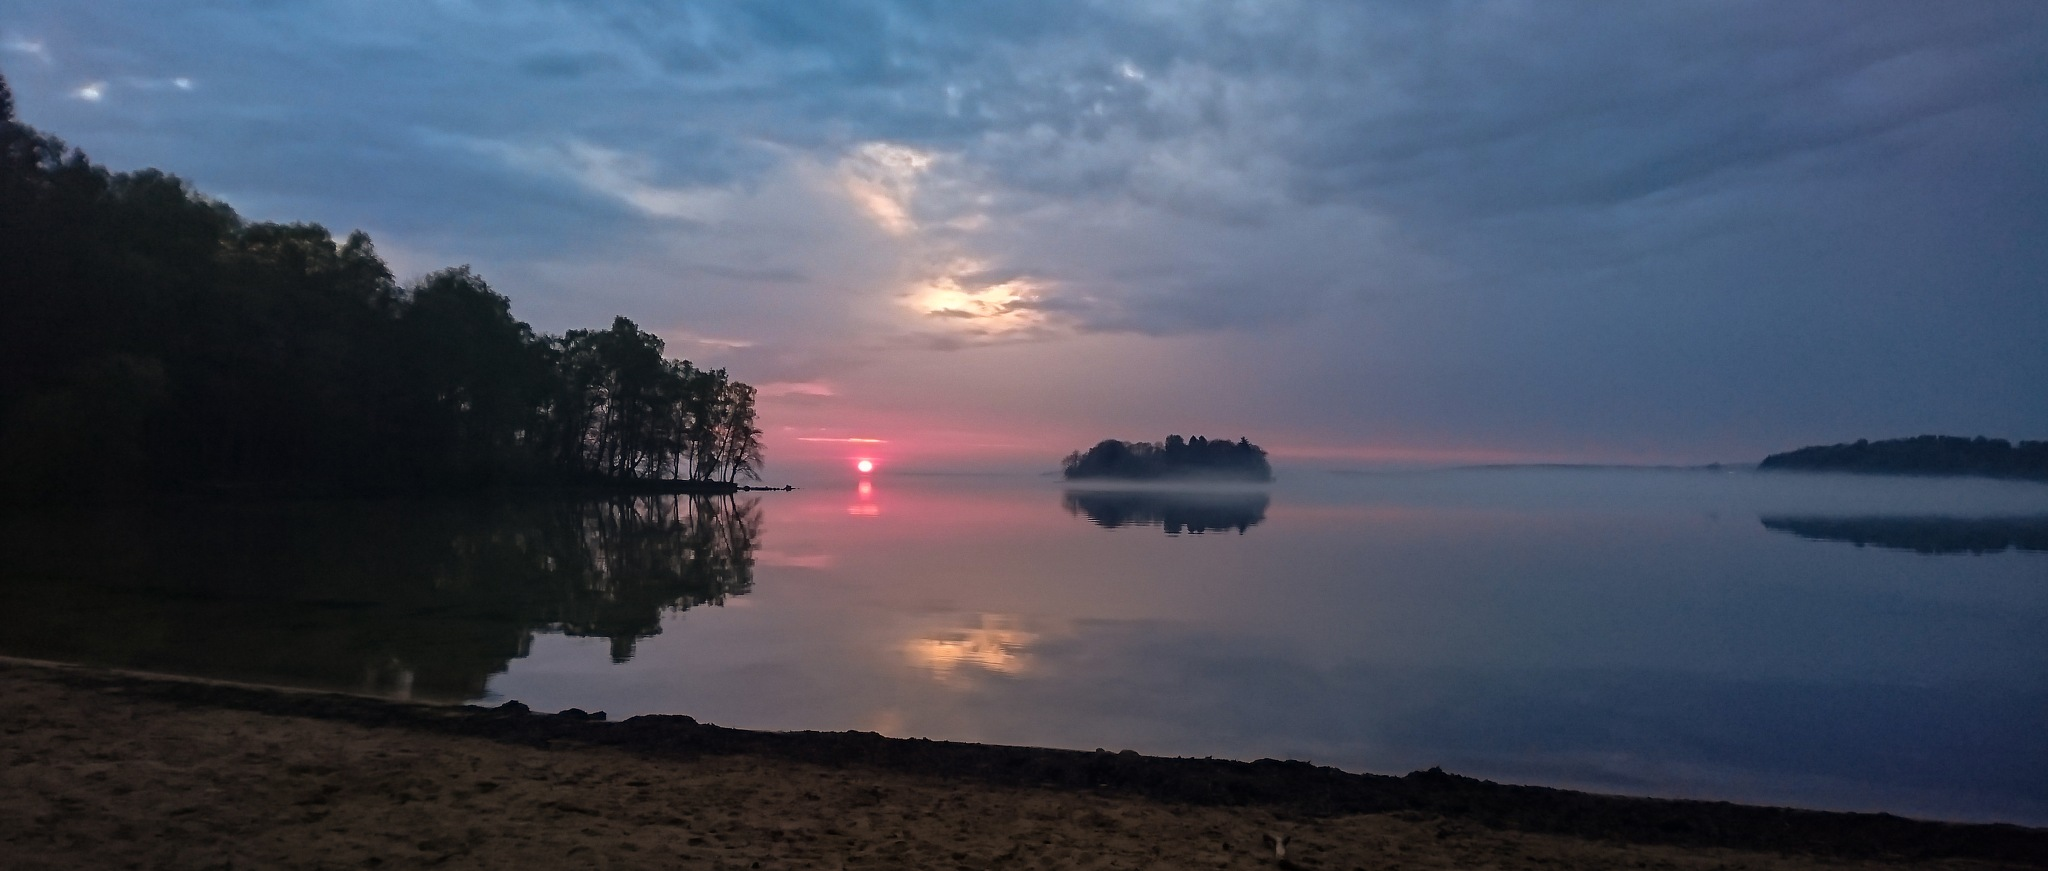 Misty sunset by Jonas Gustavsson